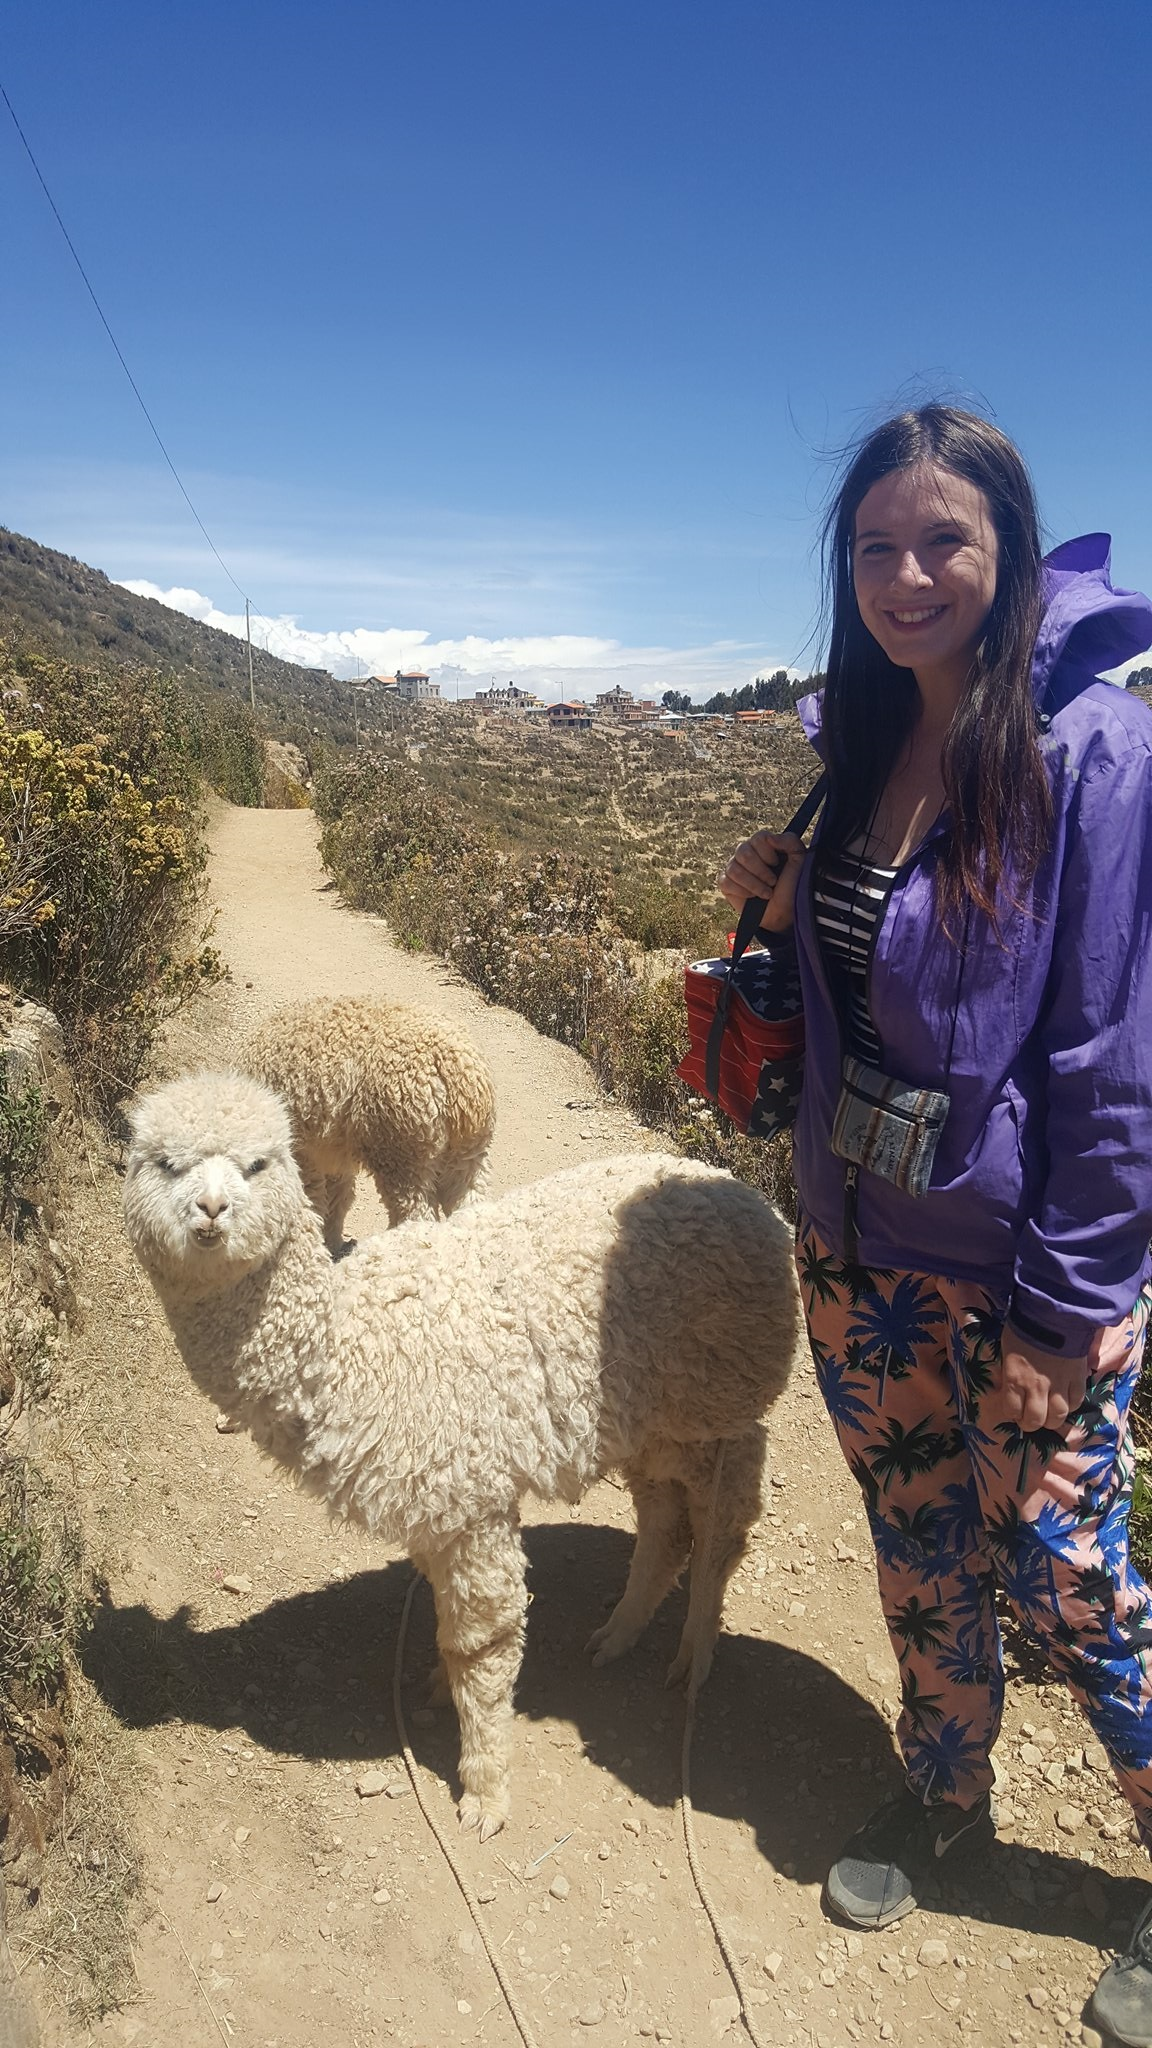 hiking Isla del sol in Bolivia